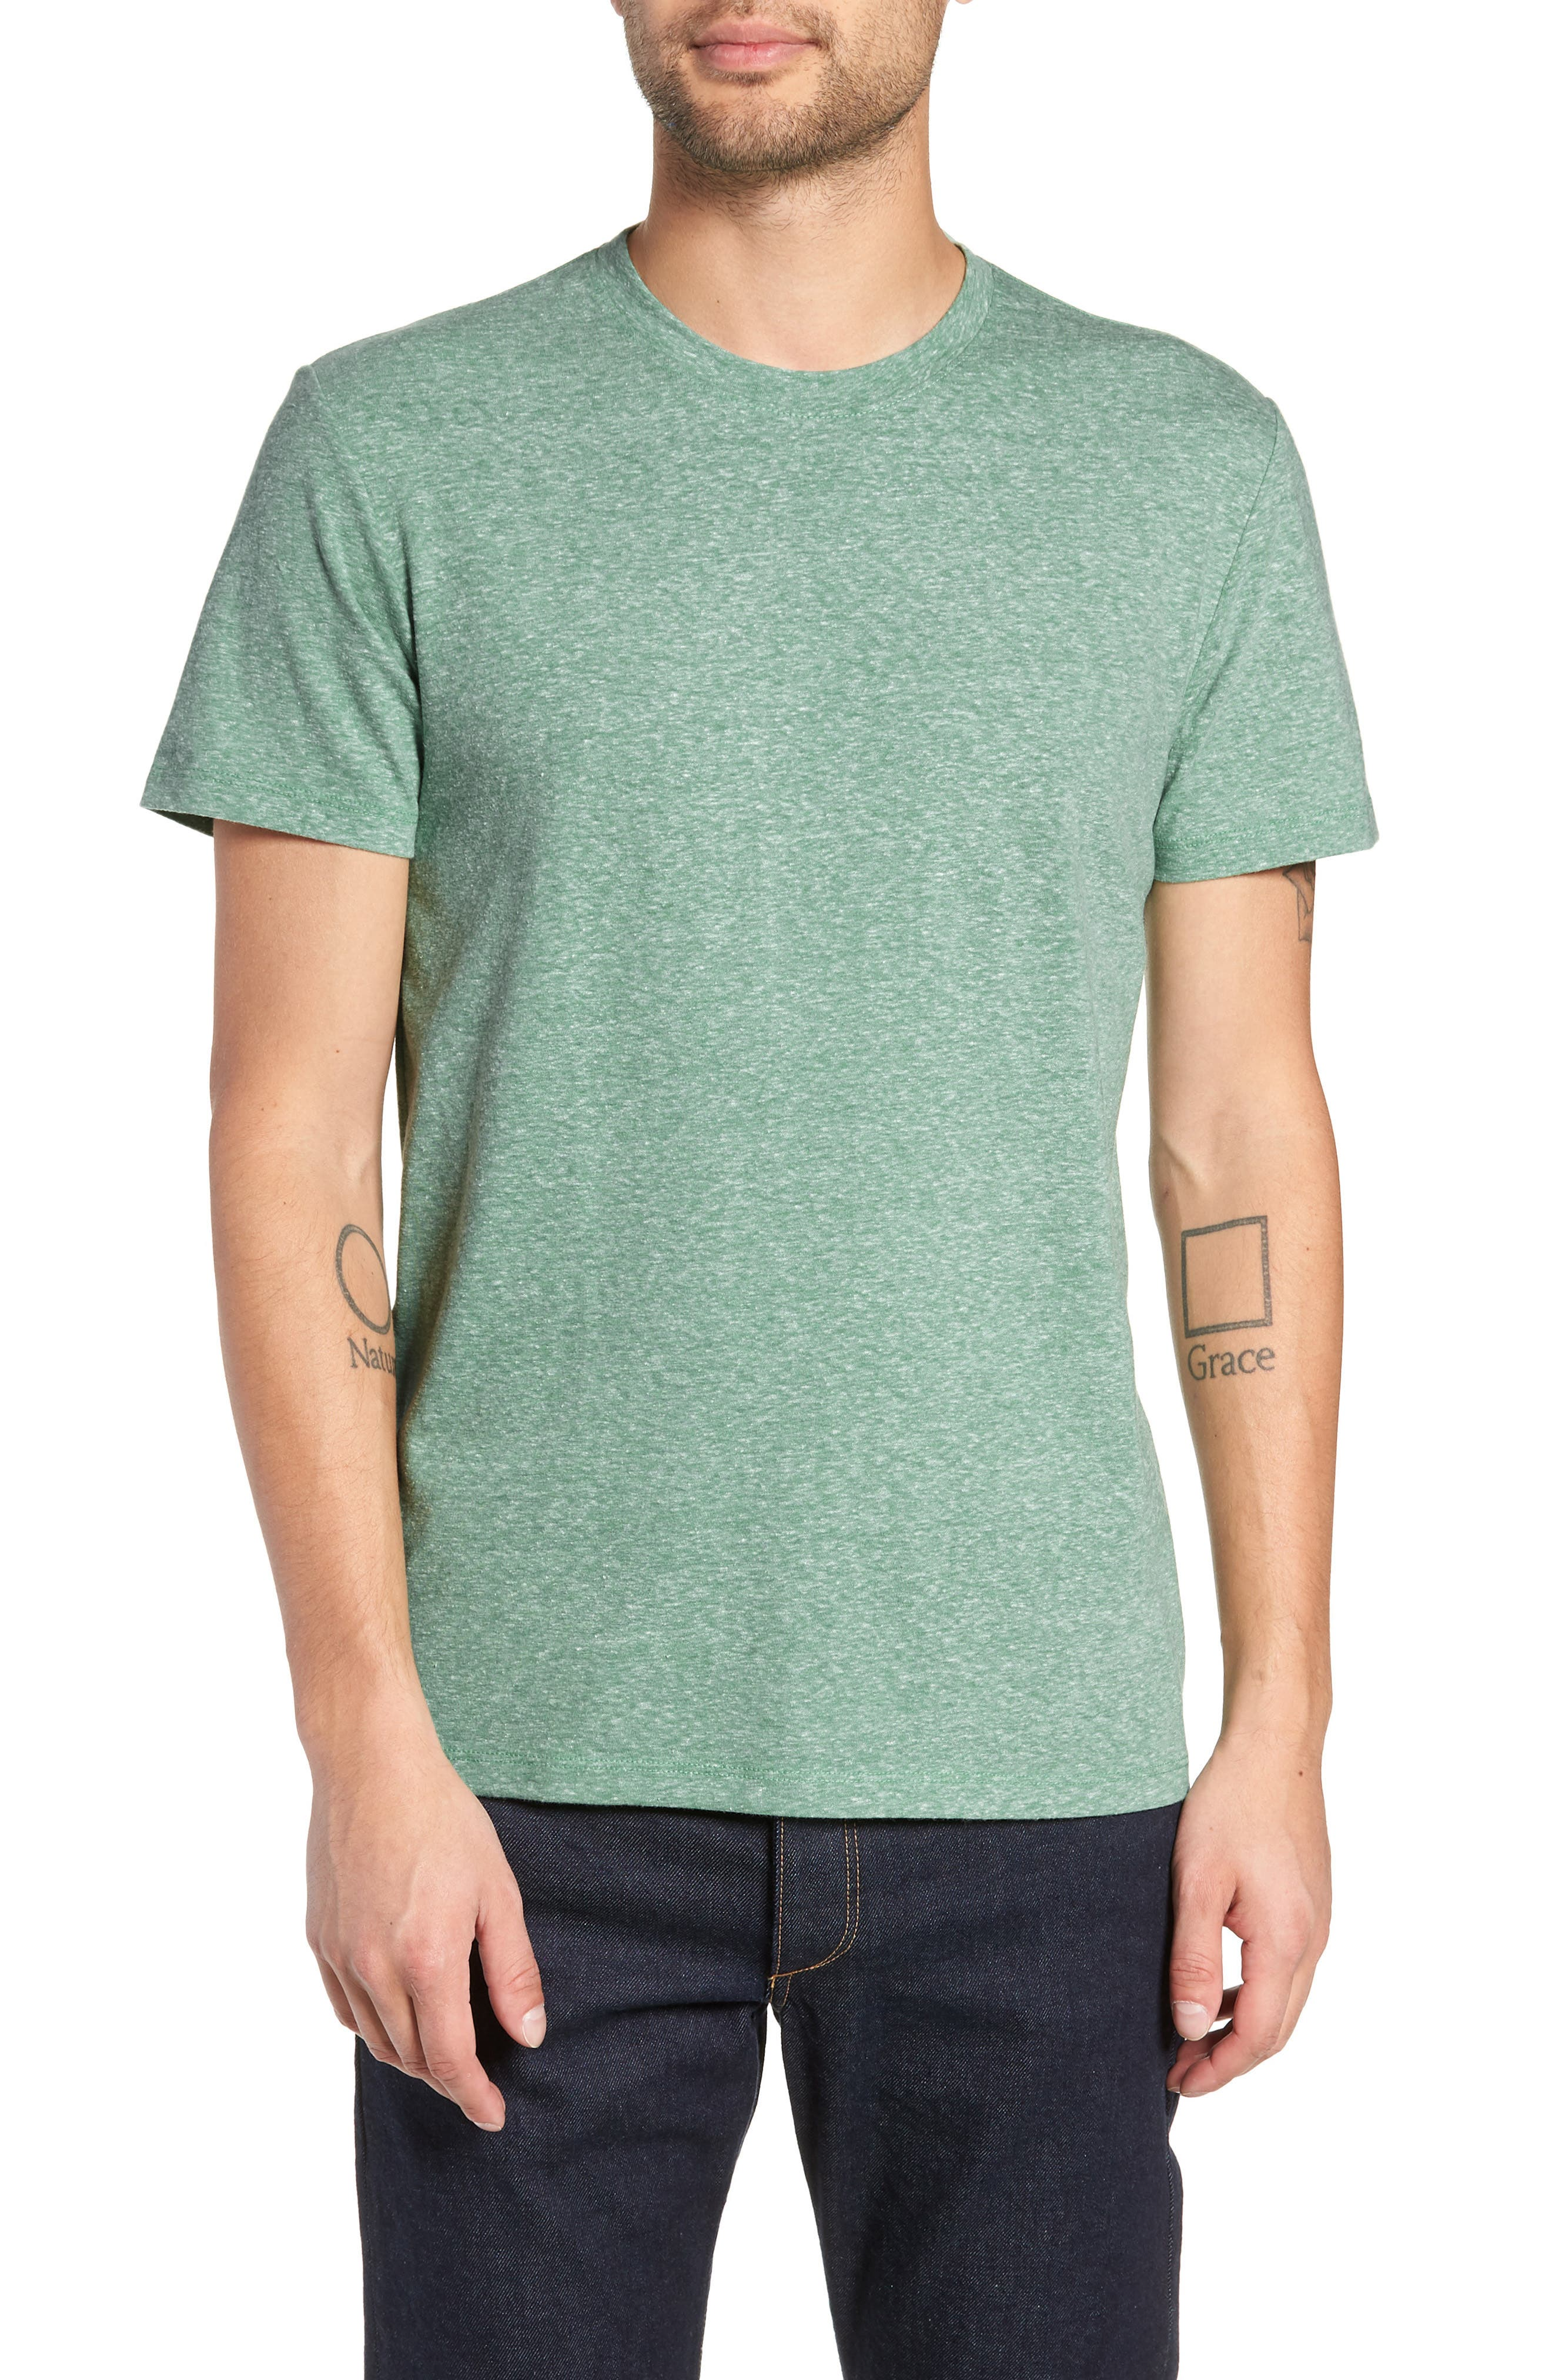 THE RAIL Solid Crewneck T-Shirt, Main, color, GREEN FROSTY